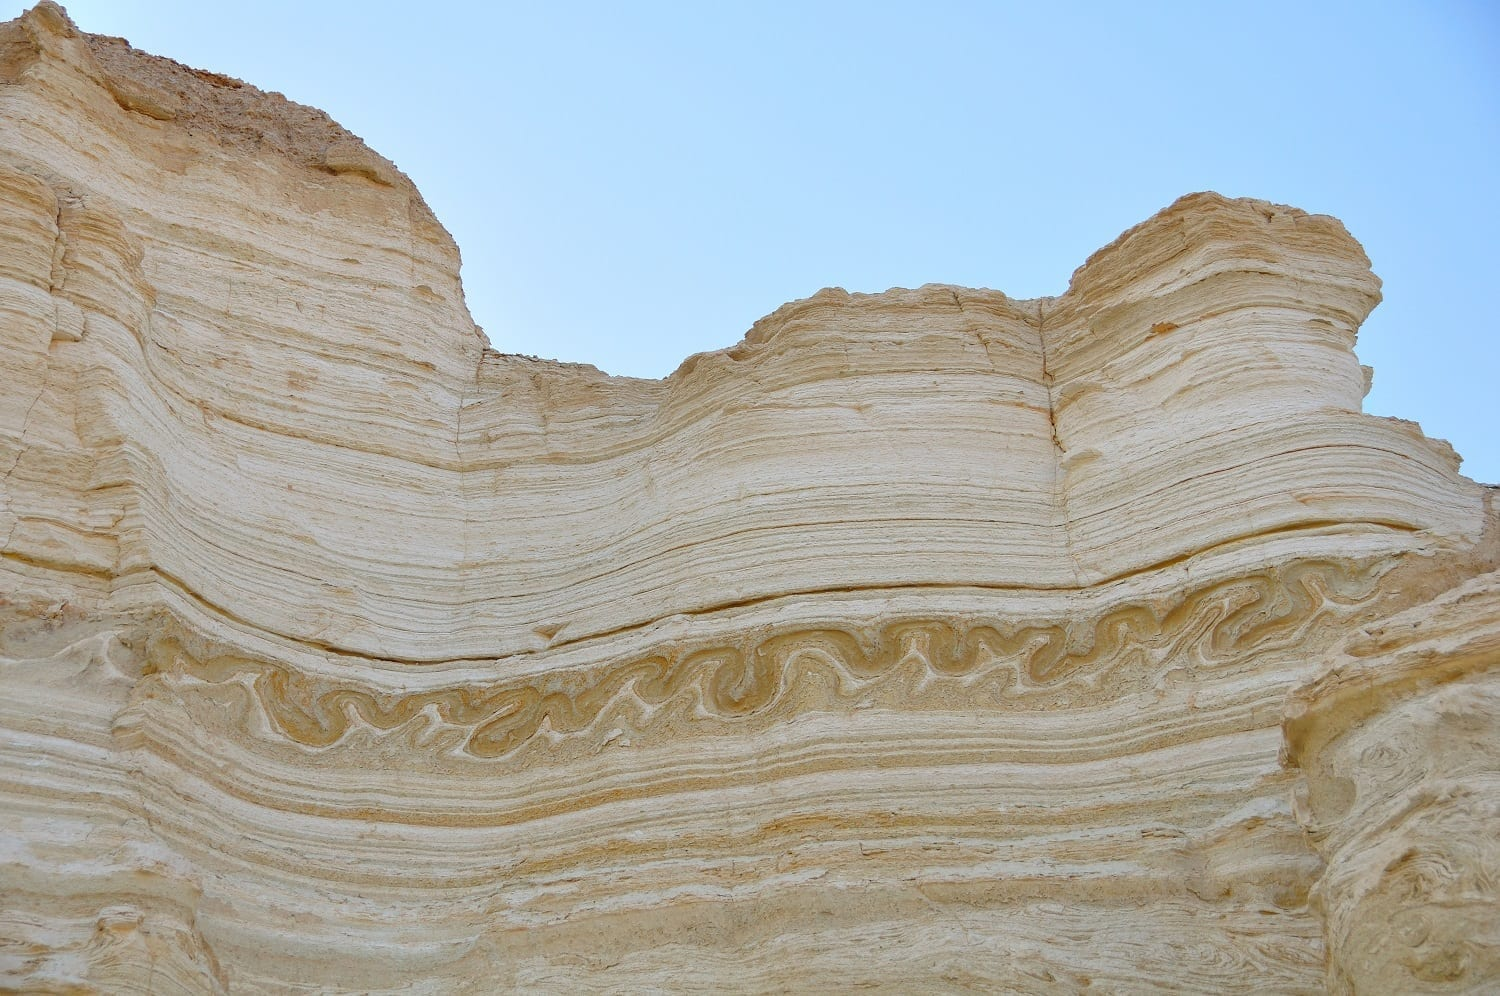 Sedimentary layers in Israel showing the serpentine folding an earthquake caused: ID 22433417 © Hugoht | Dreamstime.com